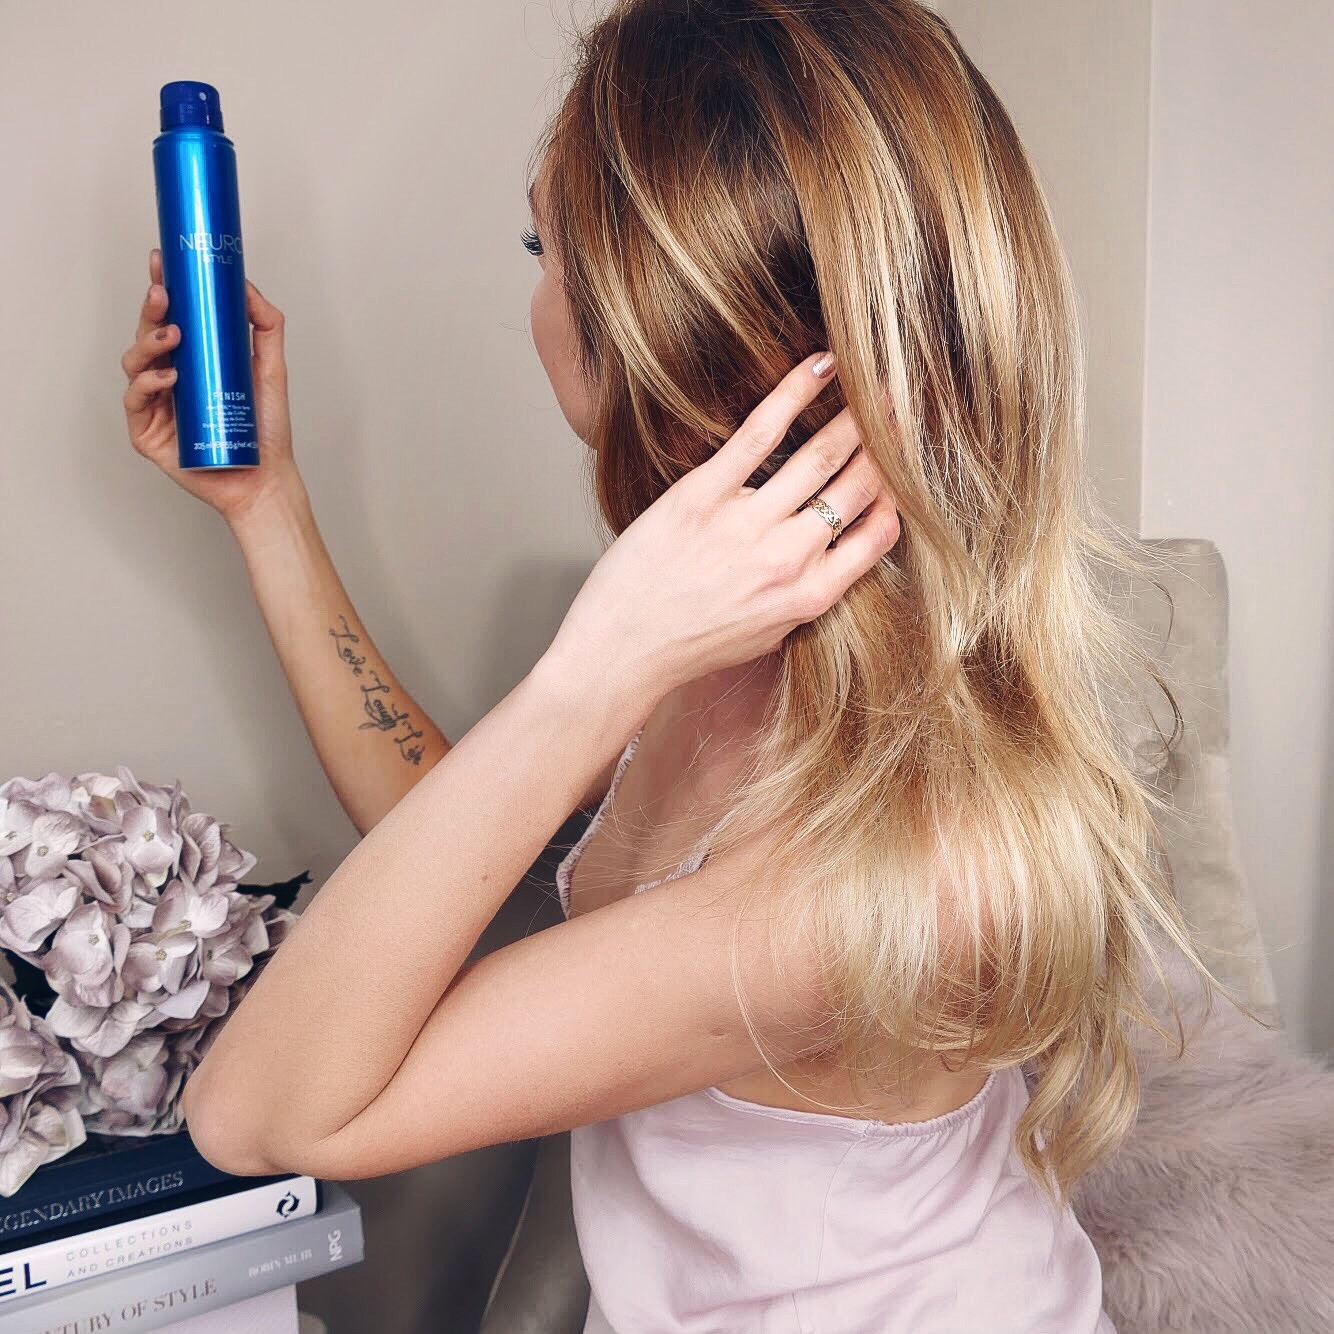 hair care, hair products, damaged hair, paul mitchell, neuro, styling